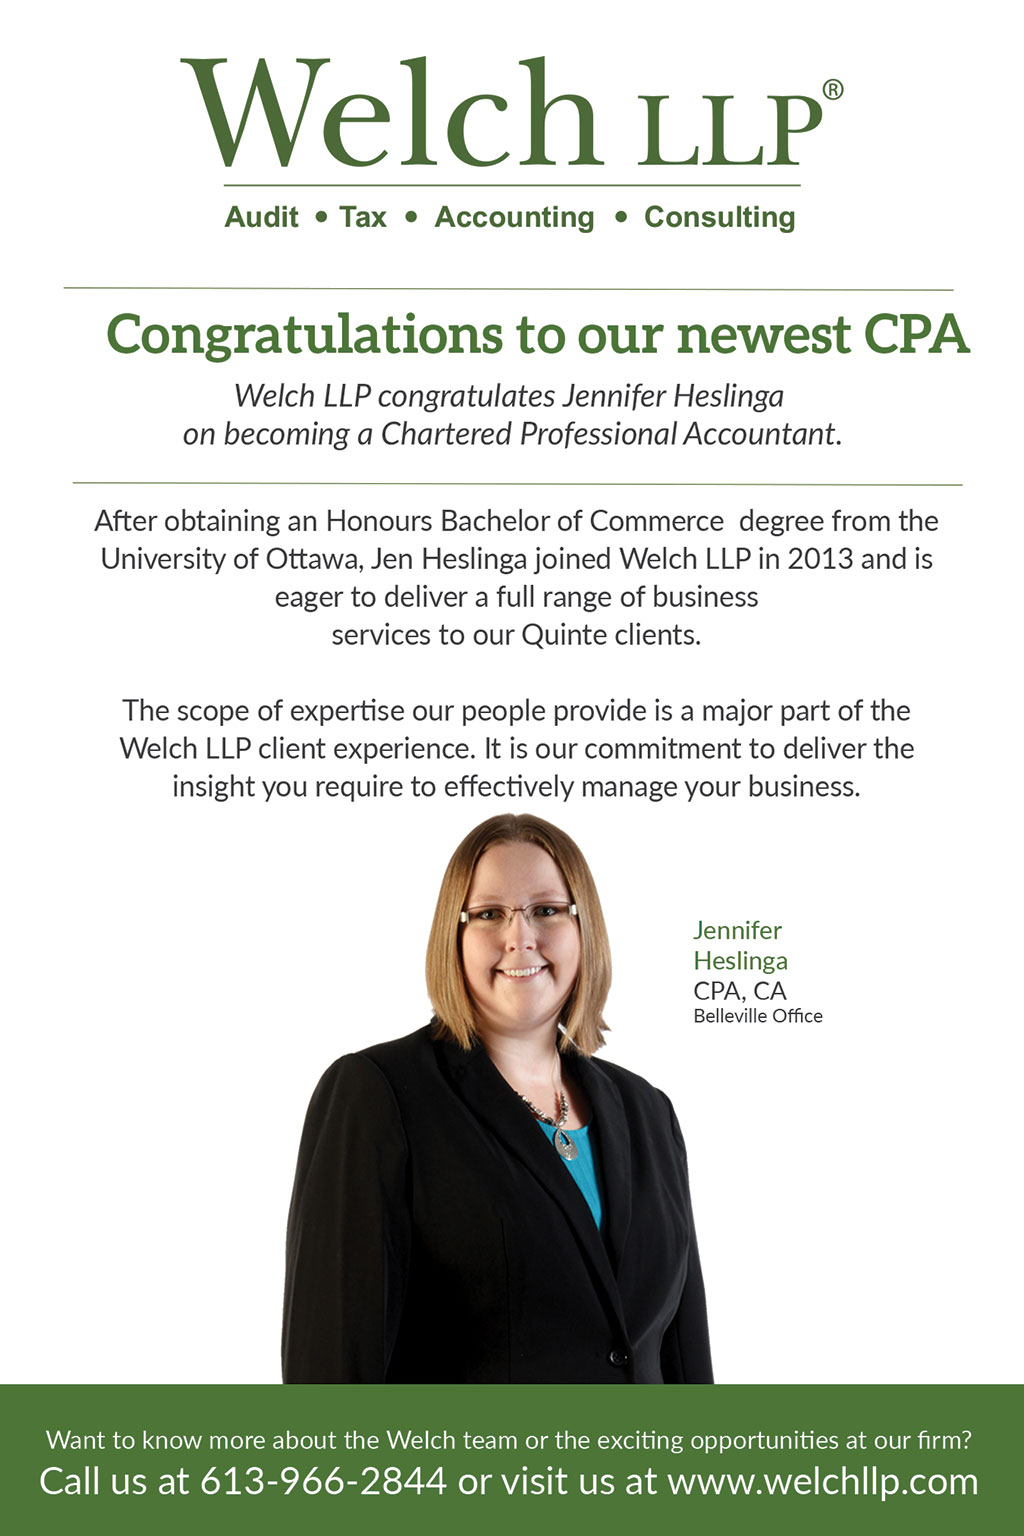 Congratulations to our newest CPA, Jennifer Heslinga